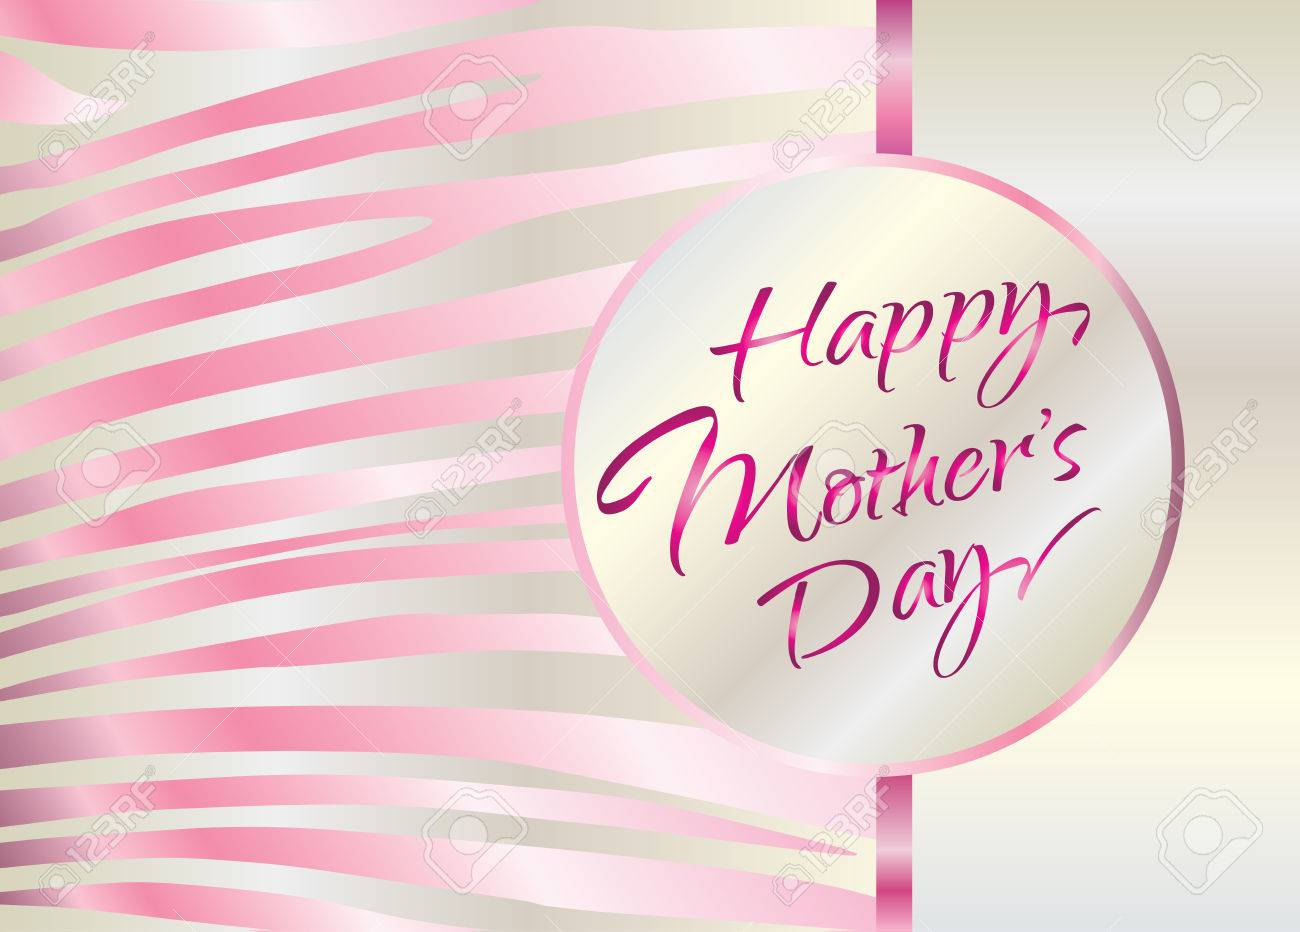 Happy Mothers Day Pink Lettering Calligraphy Abstract Background Digital Illustration Art Print